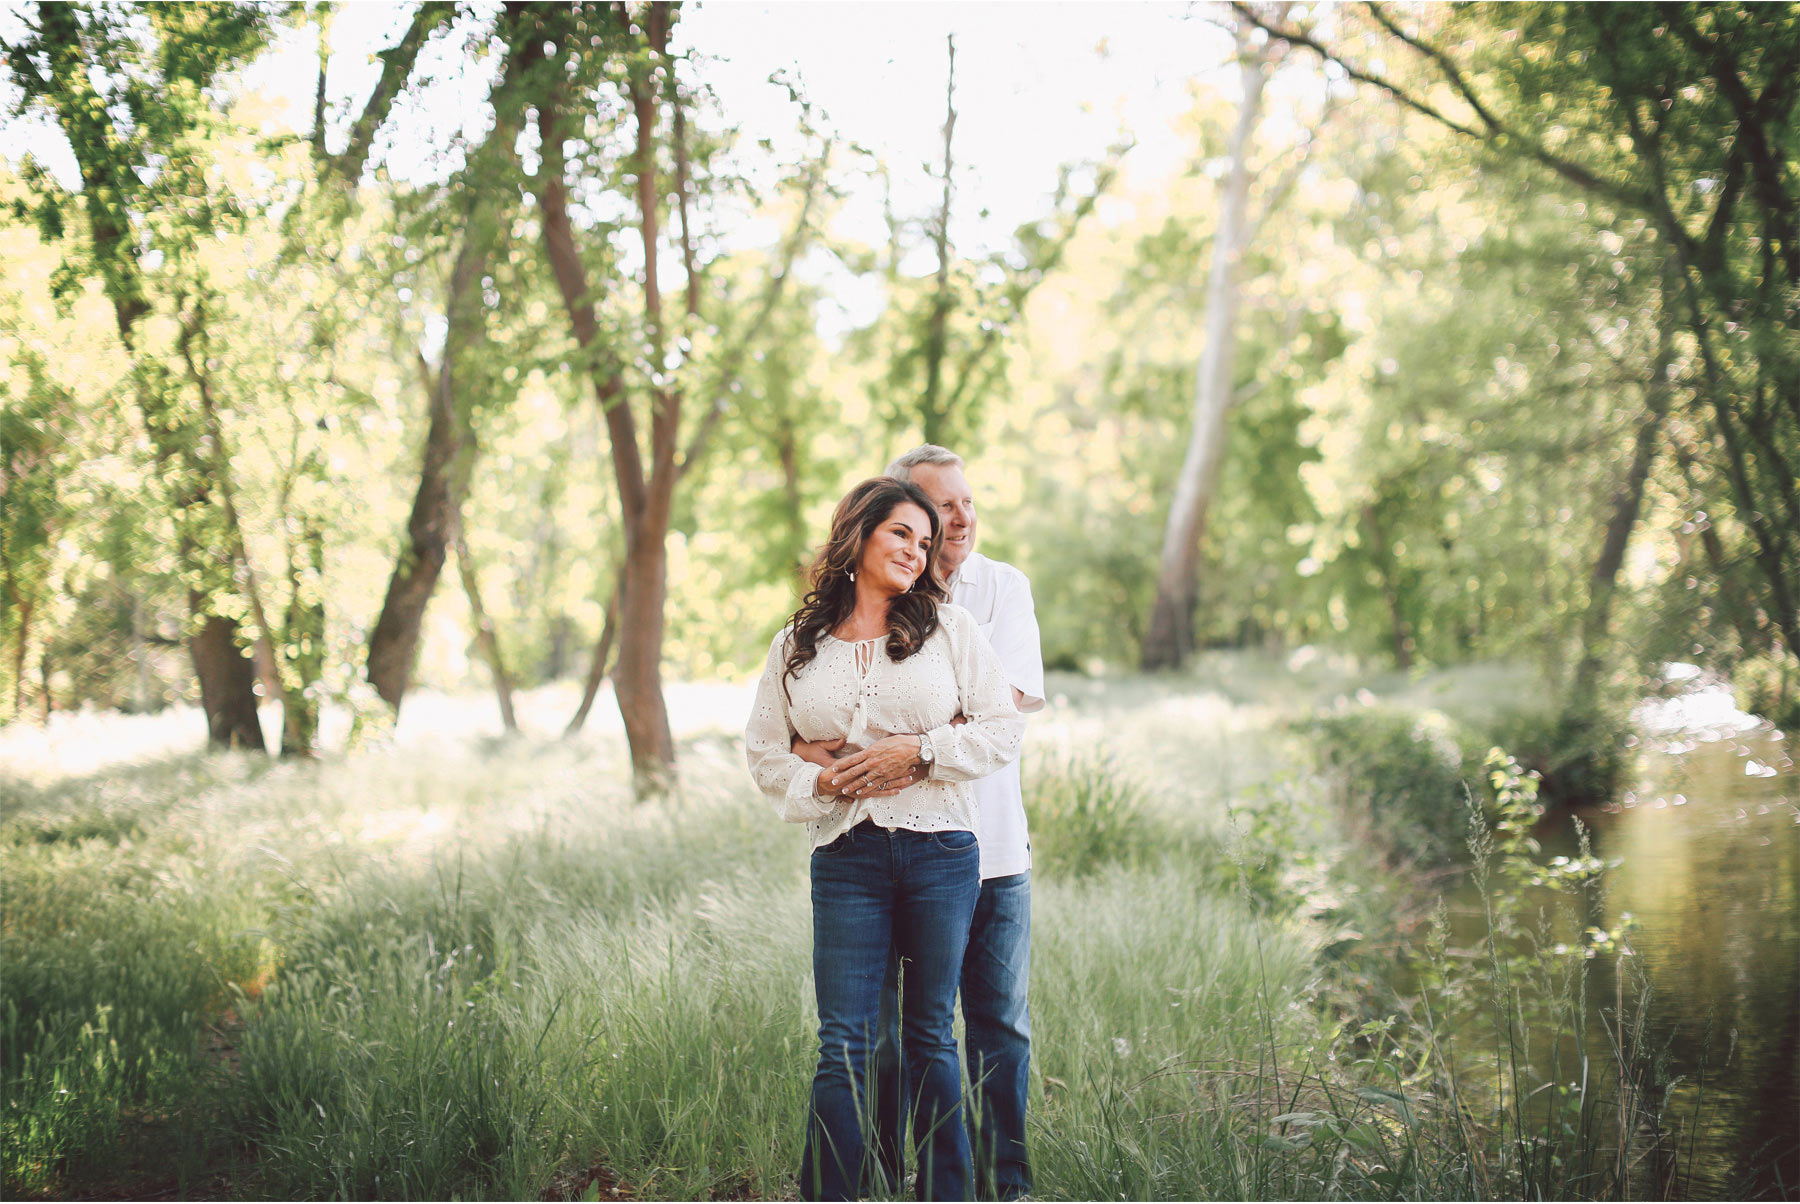 02-Cornville-Arizona-Wedding-Photographer-by-Andrew-Vick-Photography-Spring-Willow-Tree-Ranch-Rehearsal-Dinner-Bride-Groom-Field-Embrace-Vintage-Barbara-and-Mike.jpg